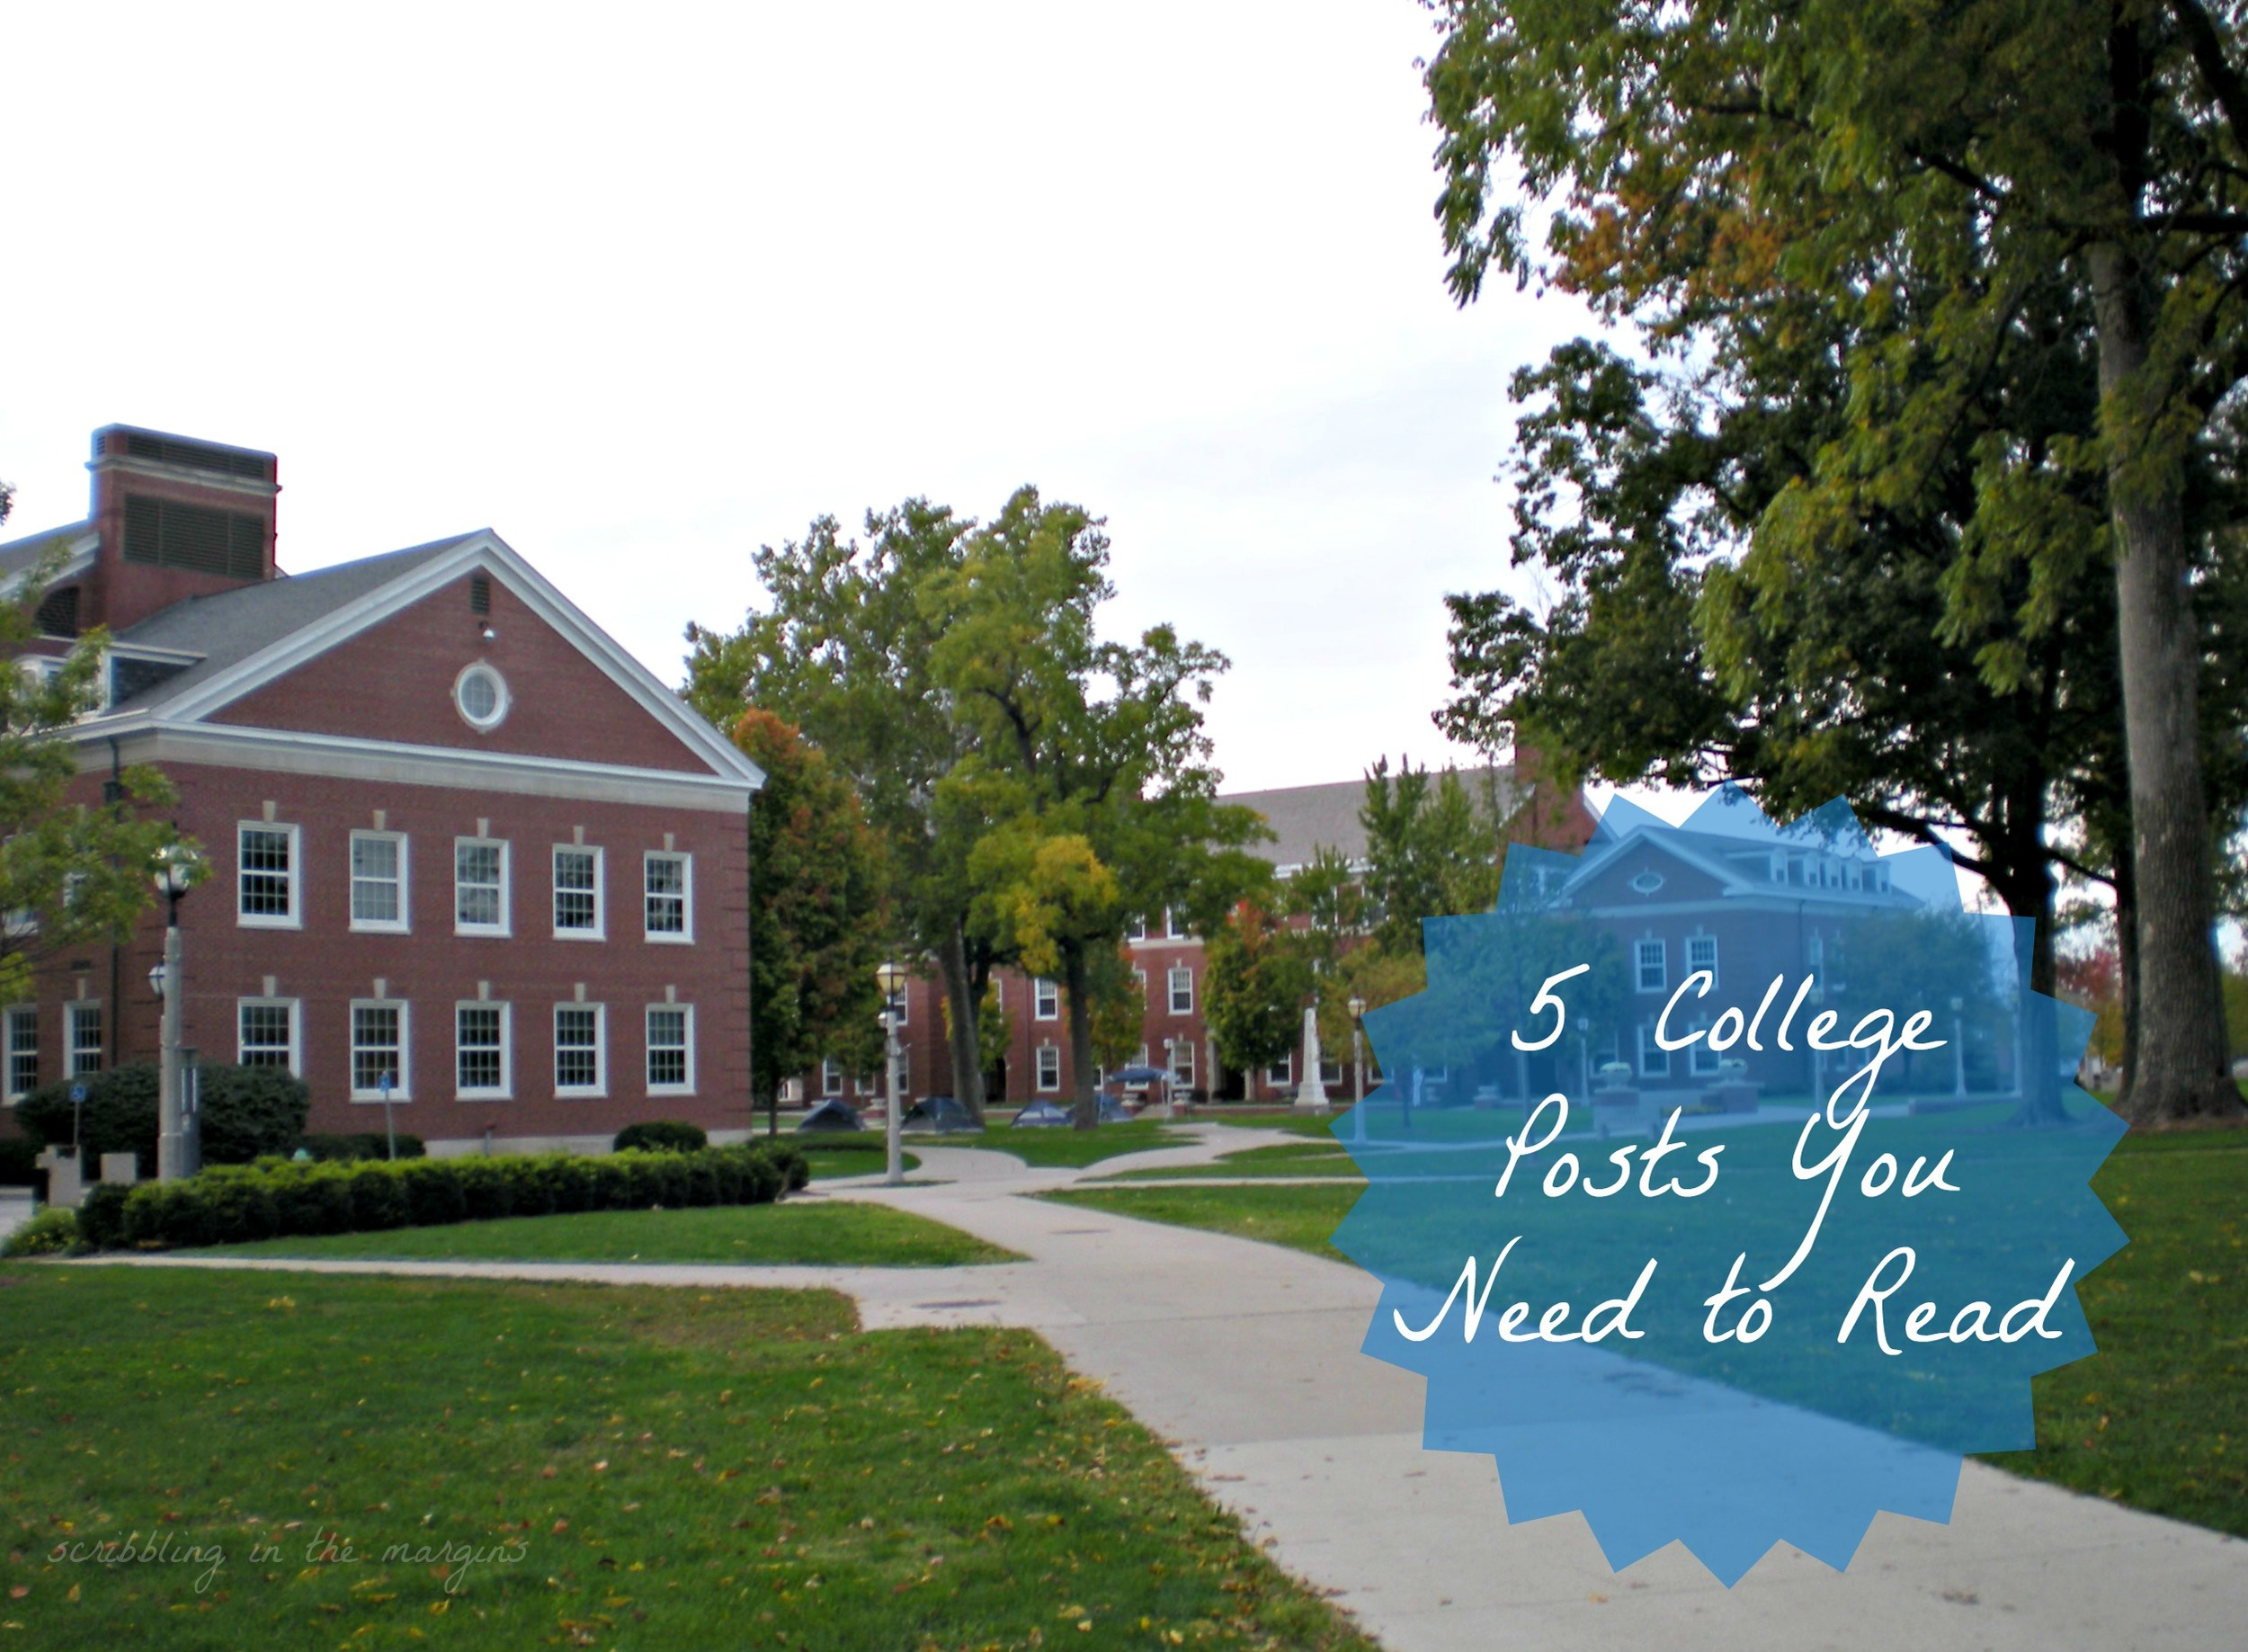 5 College Posts You Need to Read | Scribbling in the Margins blog